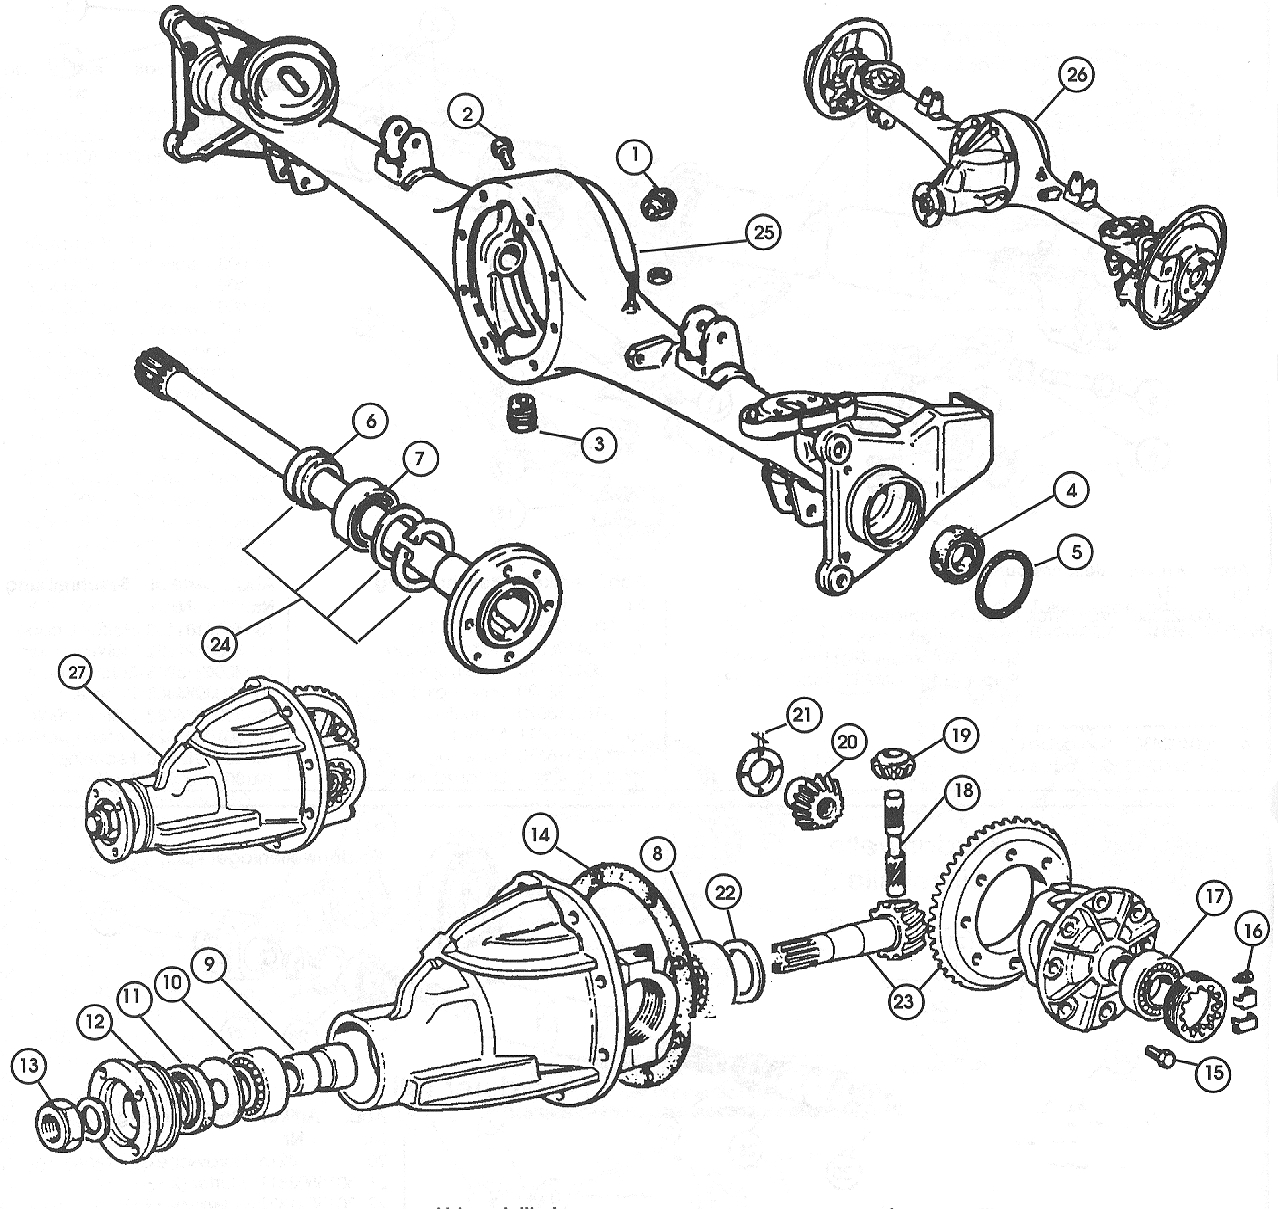 Fiat 124 Rear Axle Schematic List Of Circuit Diagram 1983 Electrical Solid Diff Gears 1968 78 500 And Rh Middlebartongarage Com